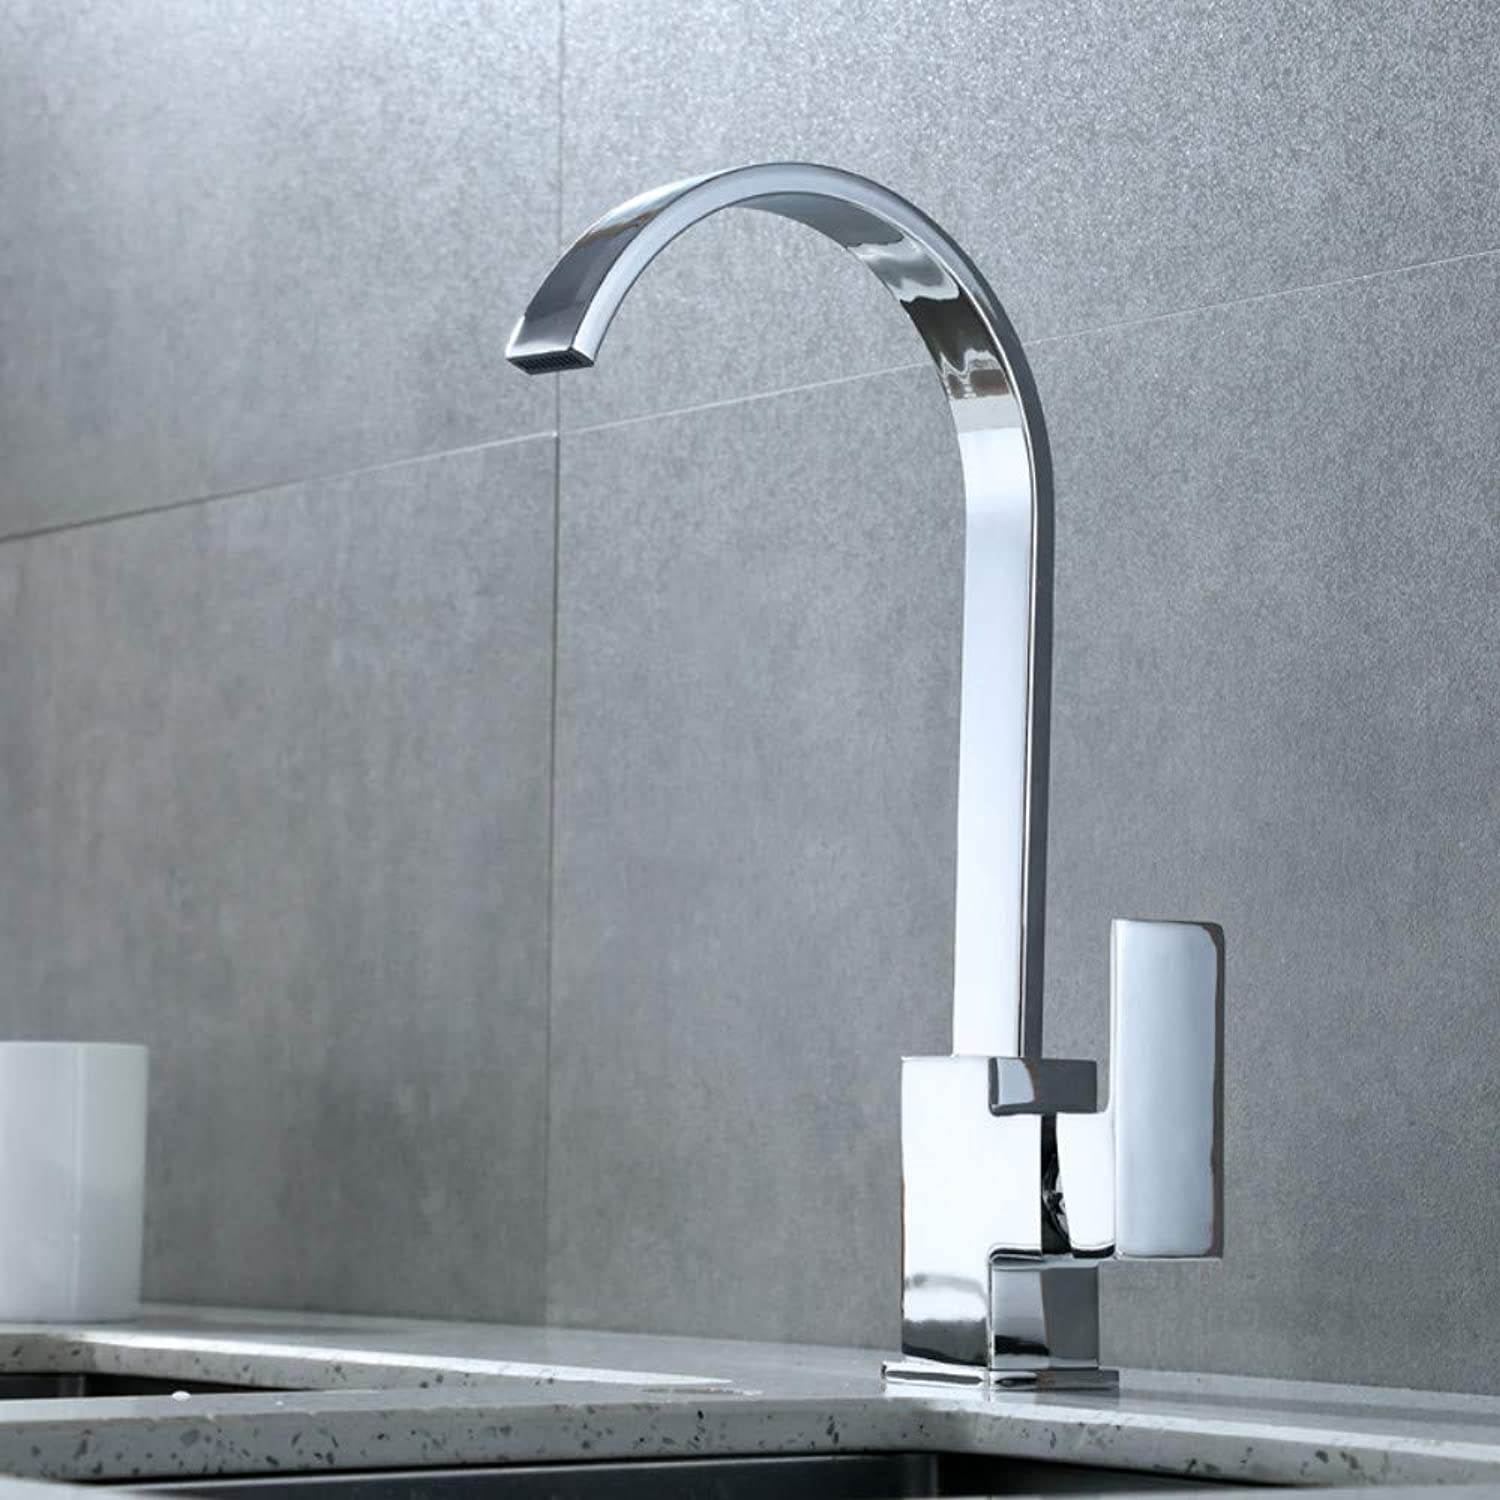 Kitchen Bathroom Sink Taps Bath Shower Systems Faucet Sink Sink Hot And Cold Water Faucet